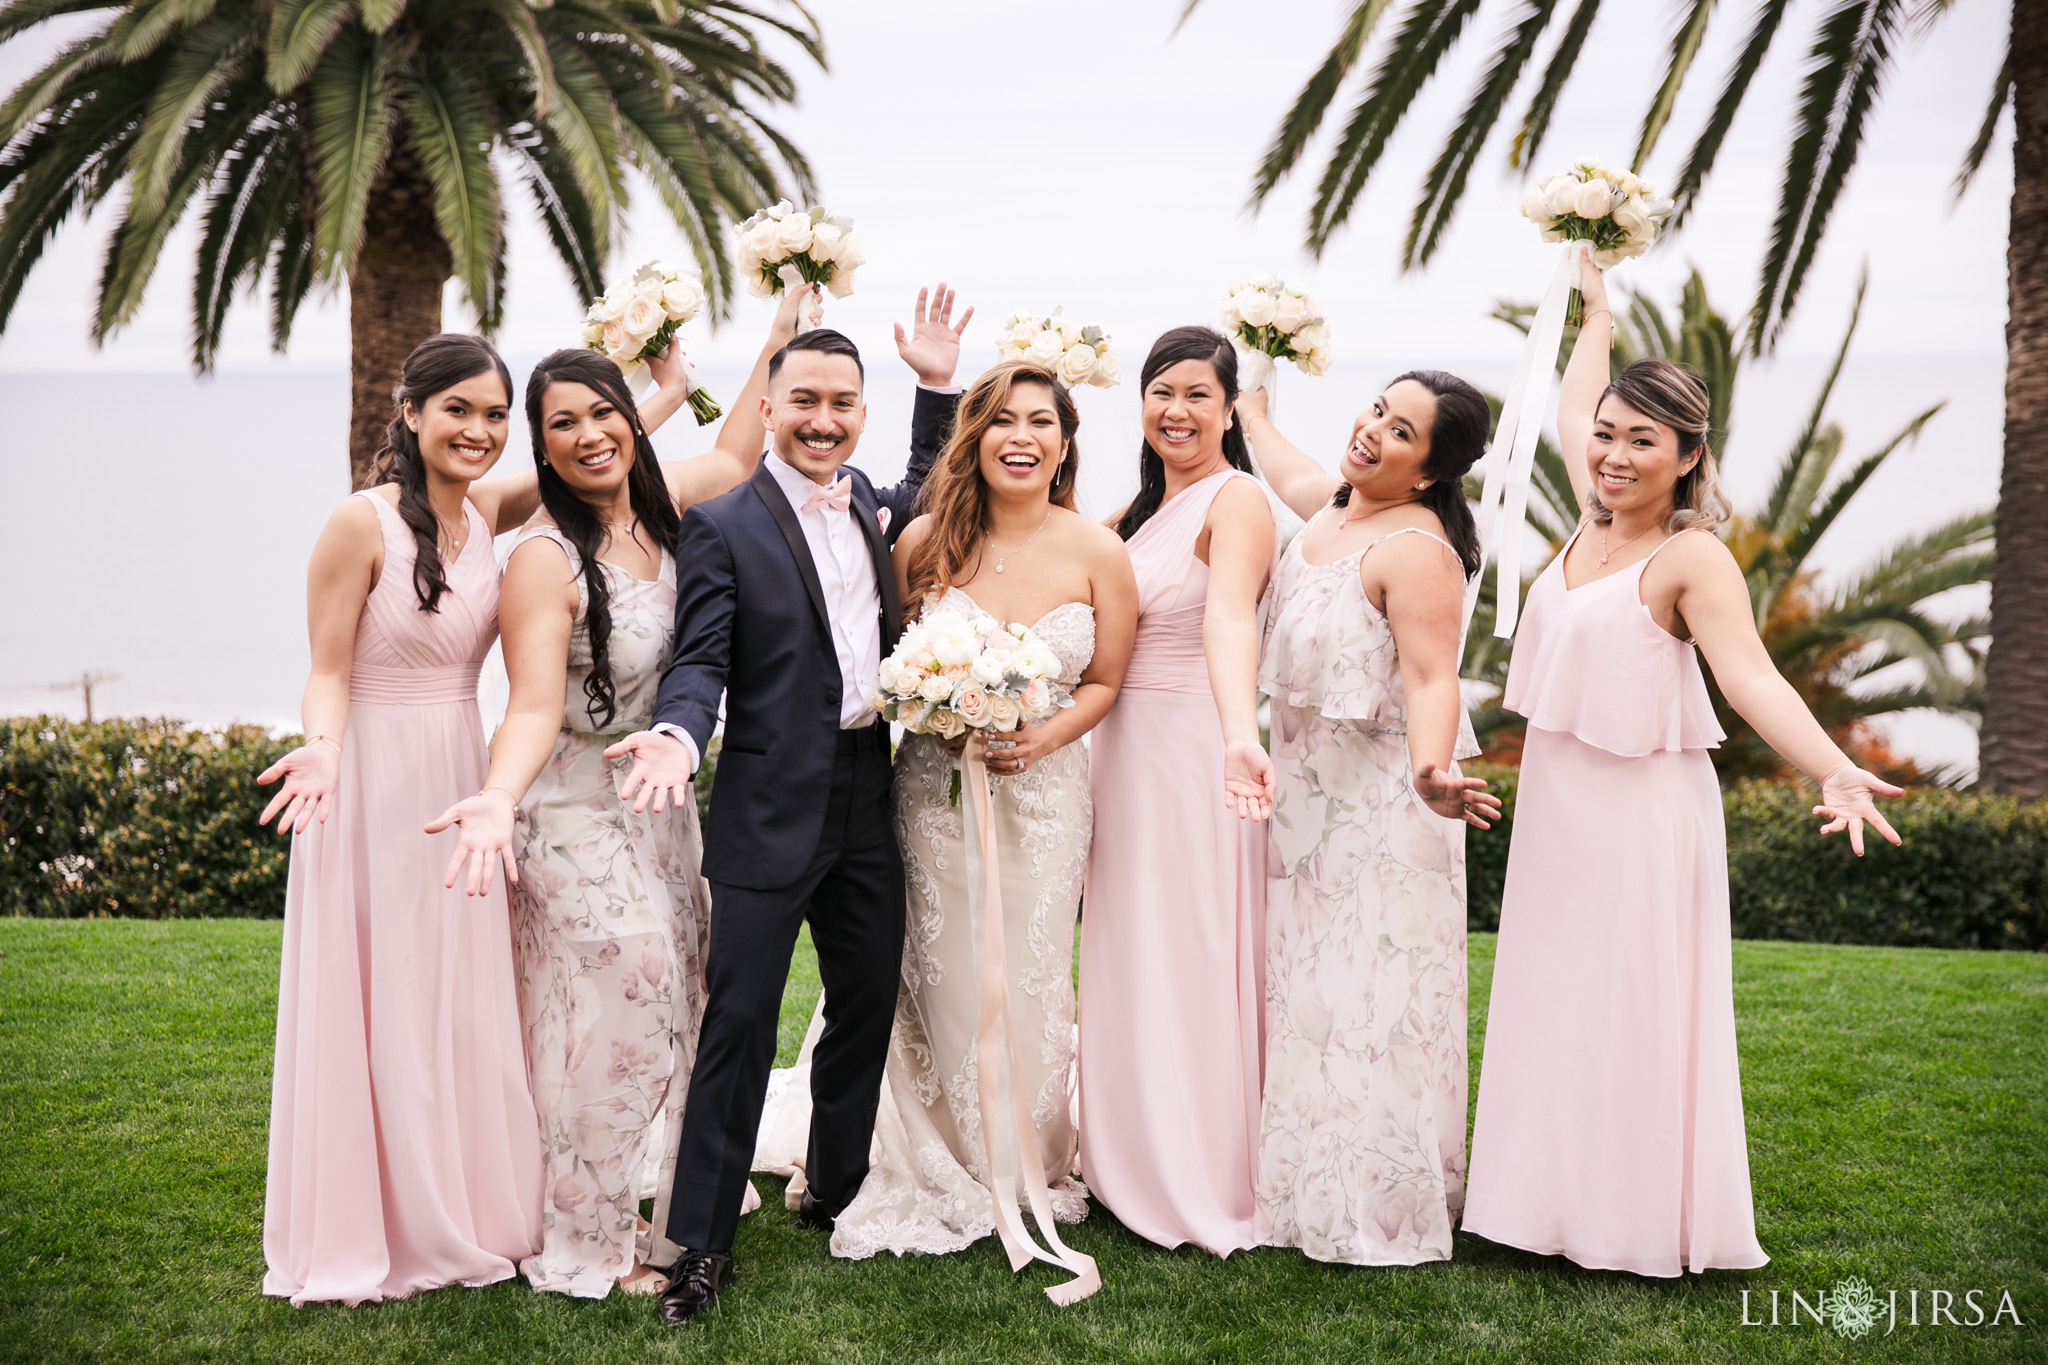 07 Bel Air Bay Club Pacific Palisades Wedding Photography